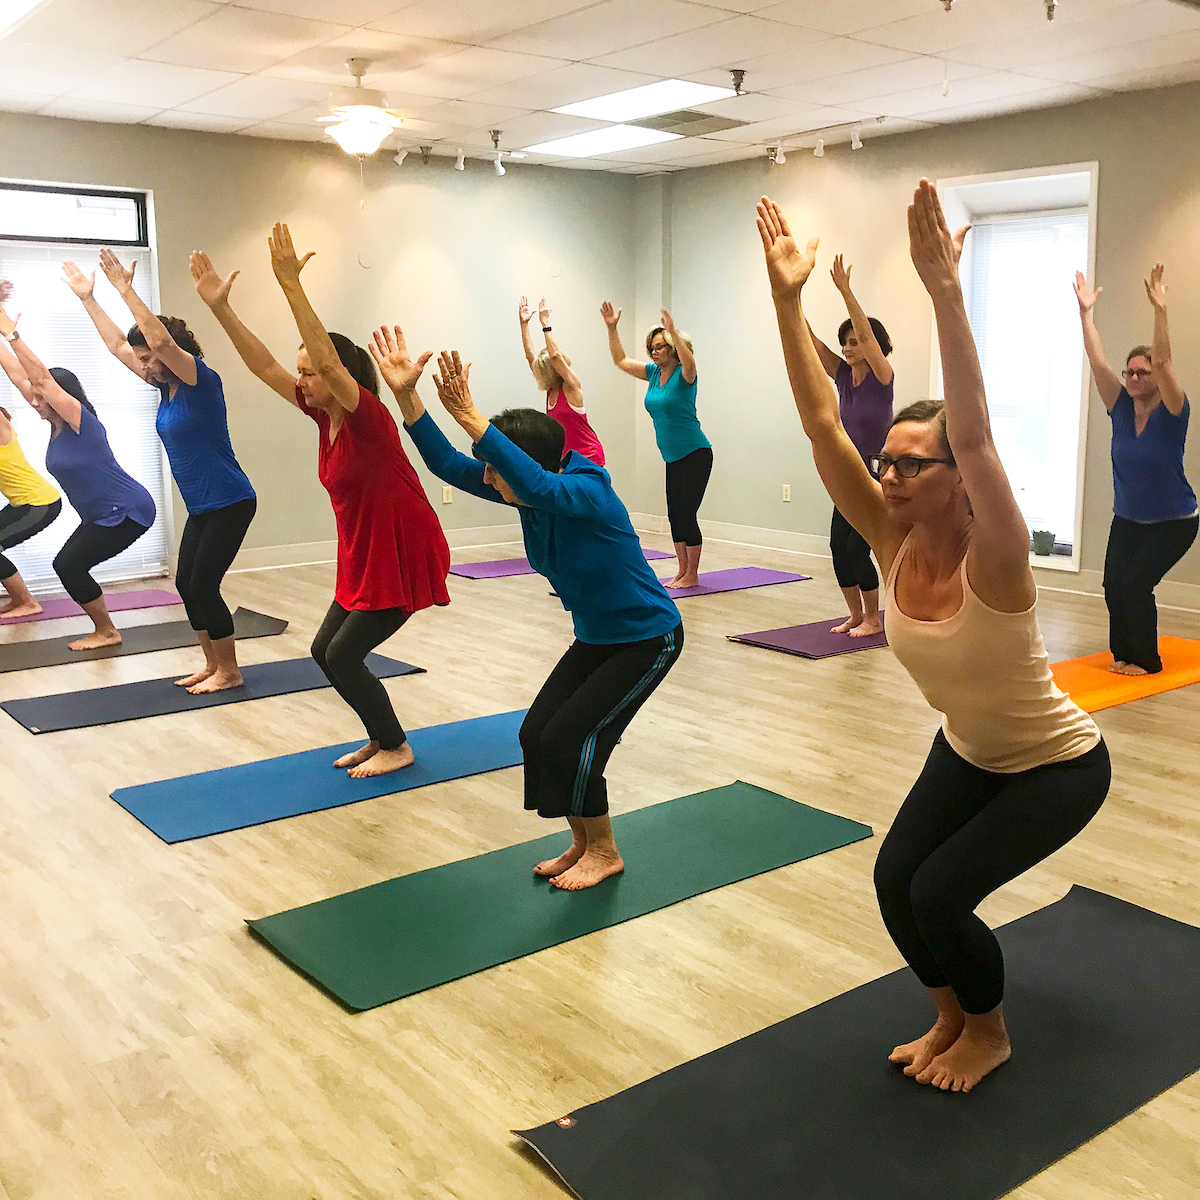 FREE Introductory Yoga Class for New Students at Sunrise Yoga Studio!